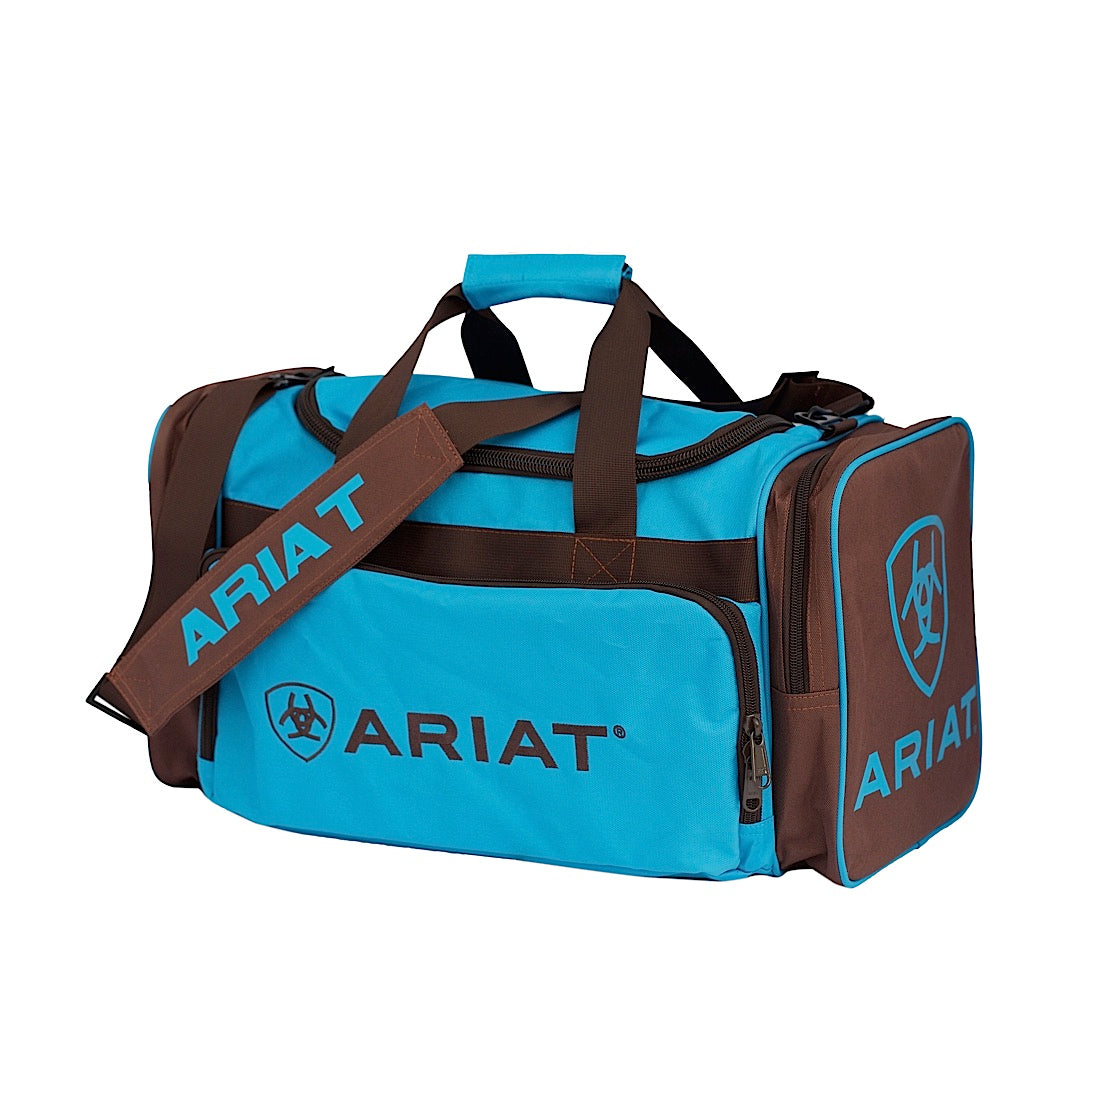 Ariat Junior Gear Bag Turquoise/Brown